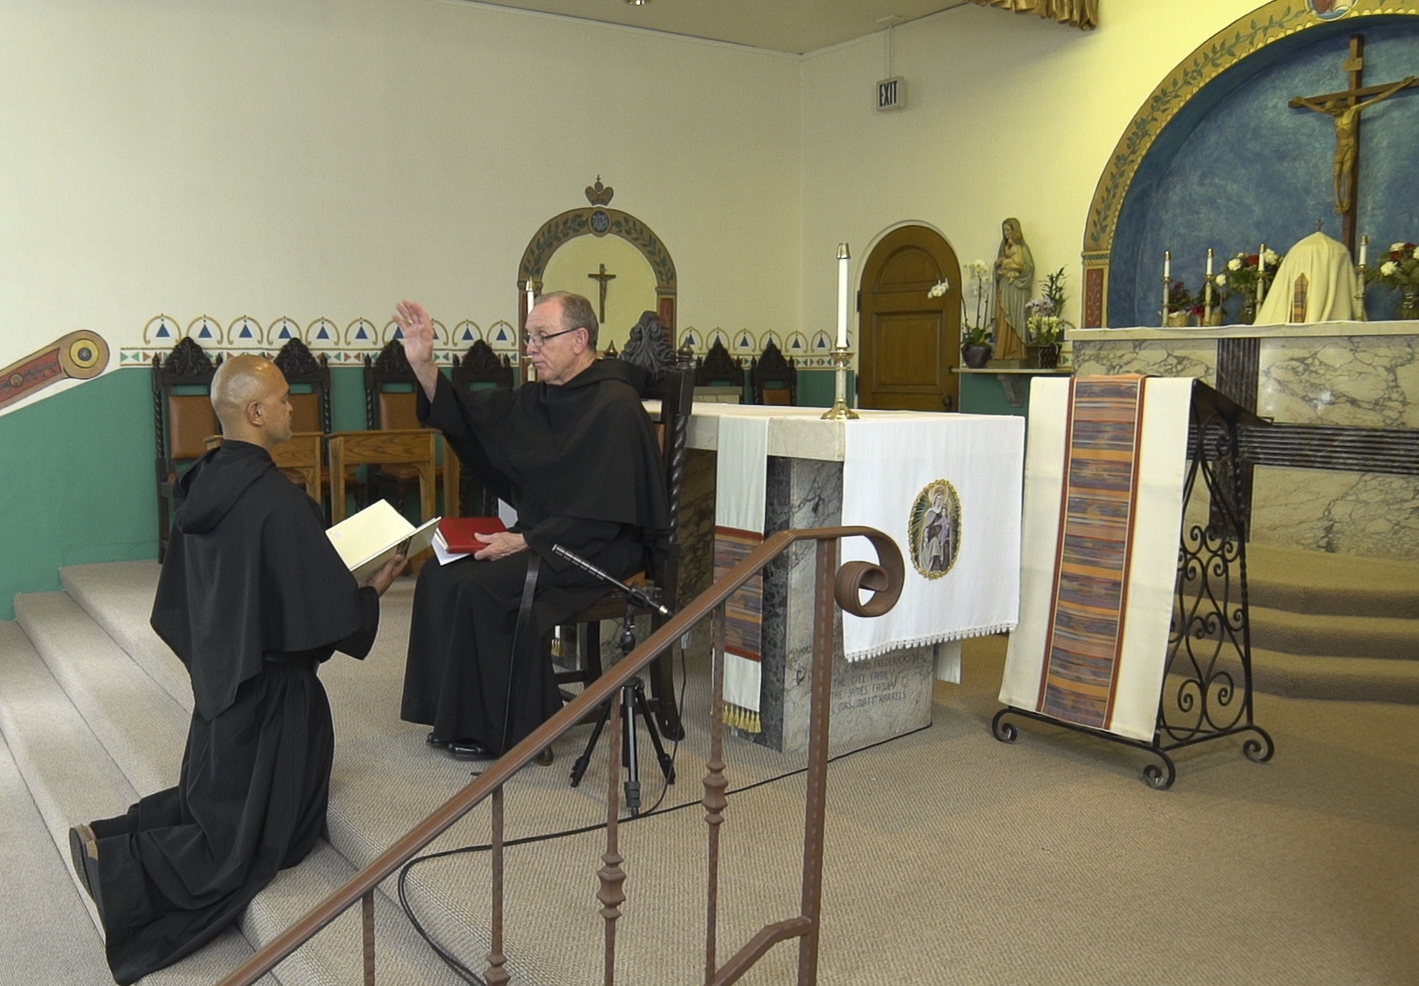 Br. Dominic Professes his Vows